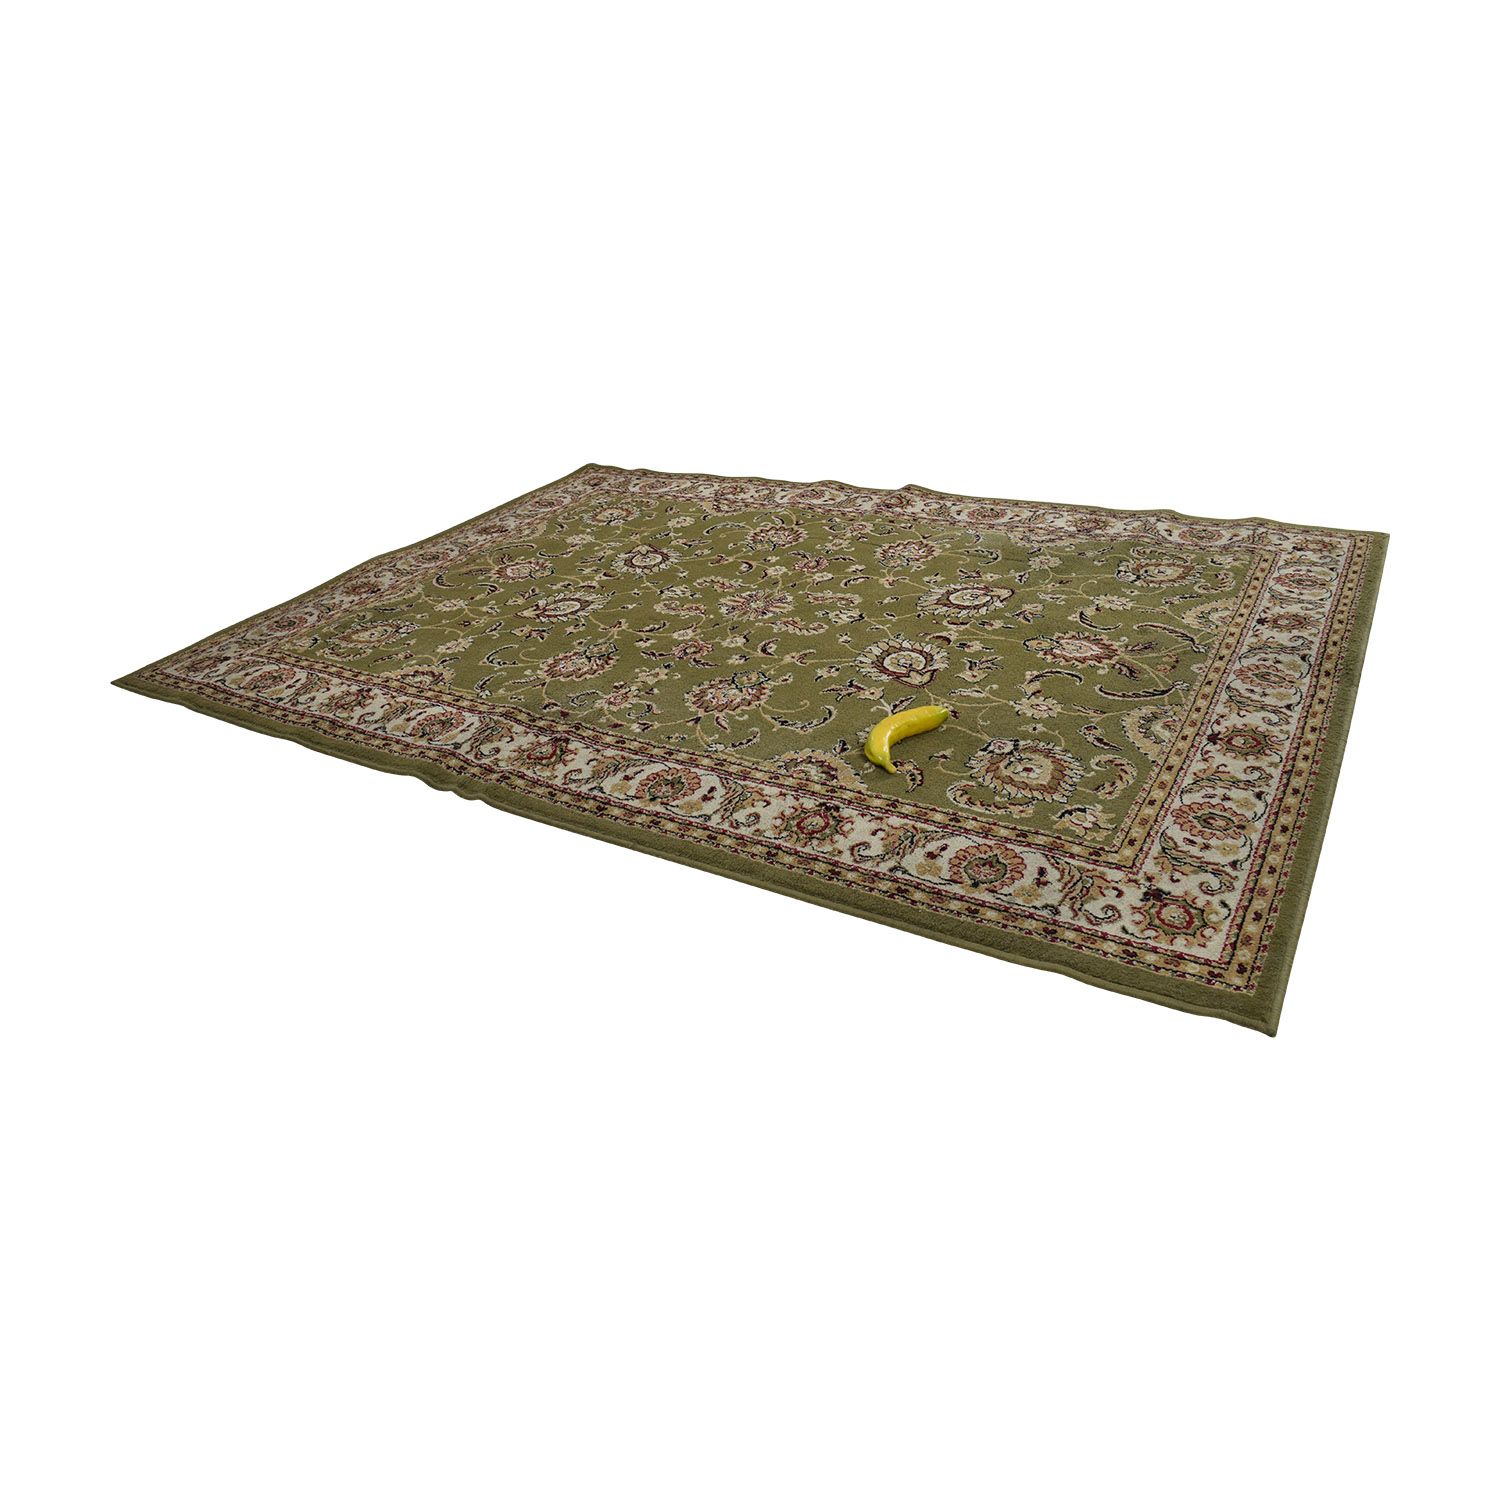 ... Home Goods Home Goods Area Rug On Sale ...